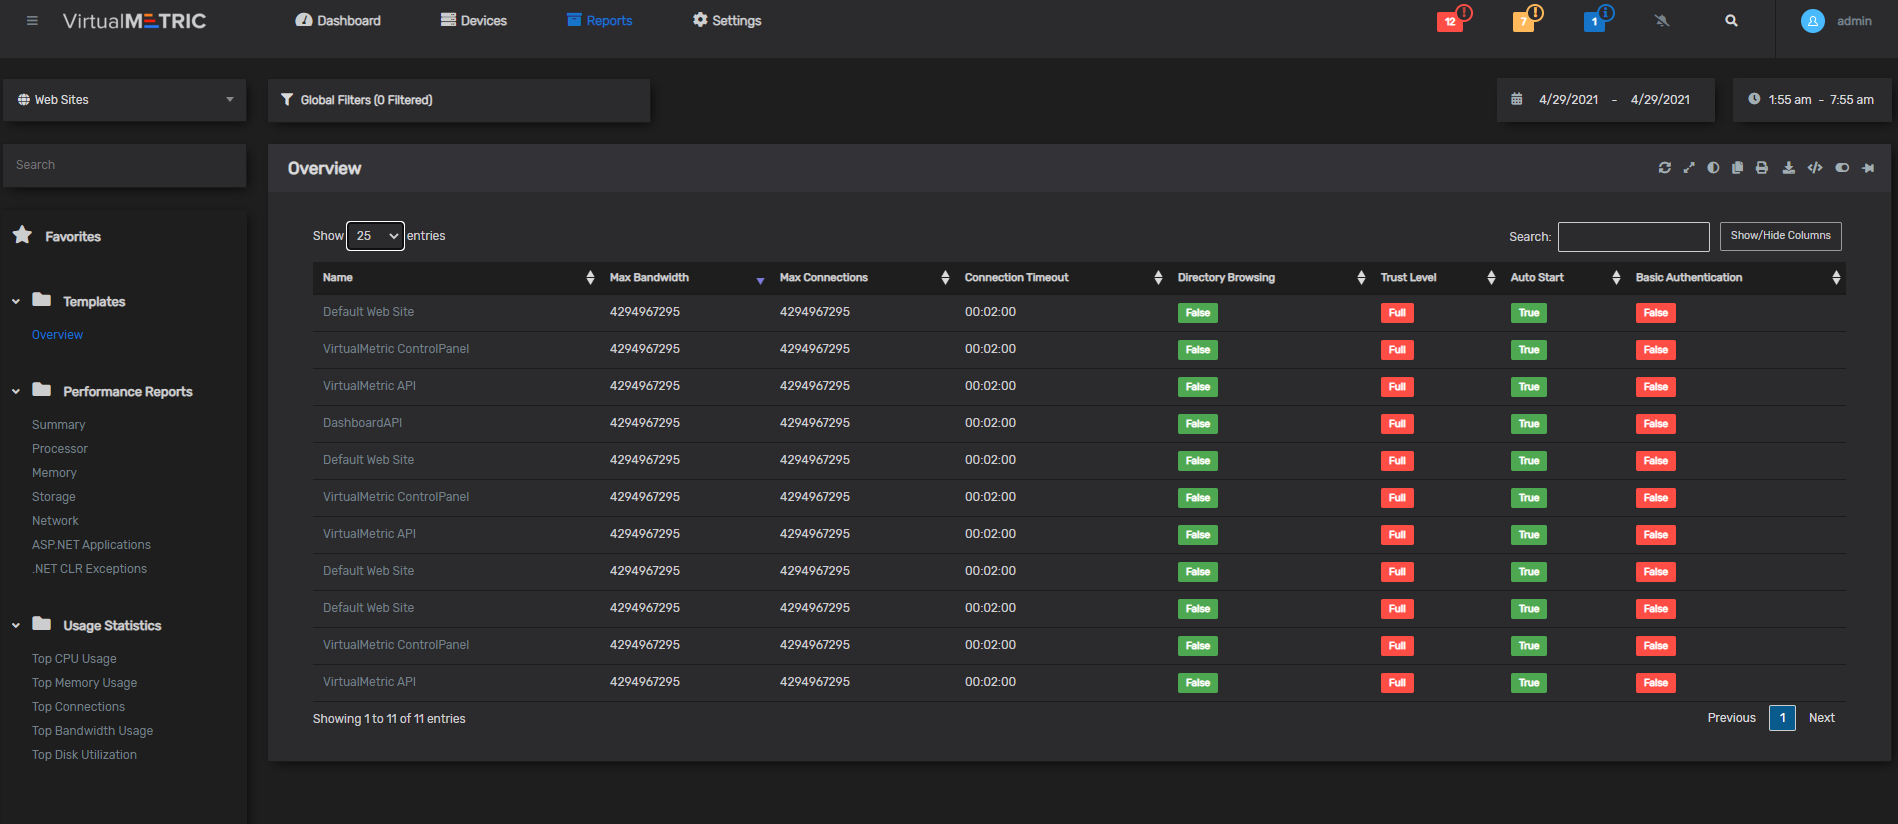 Dashboard - Overview